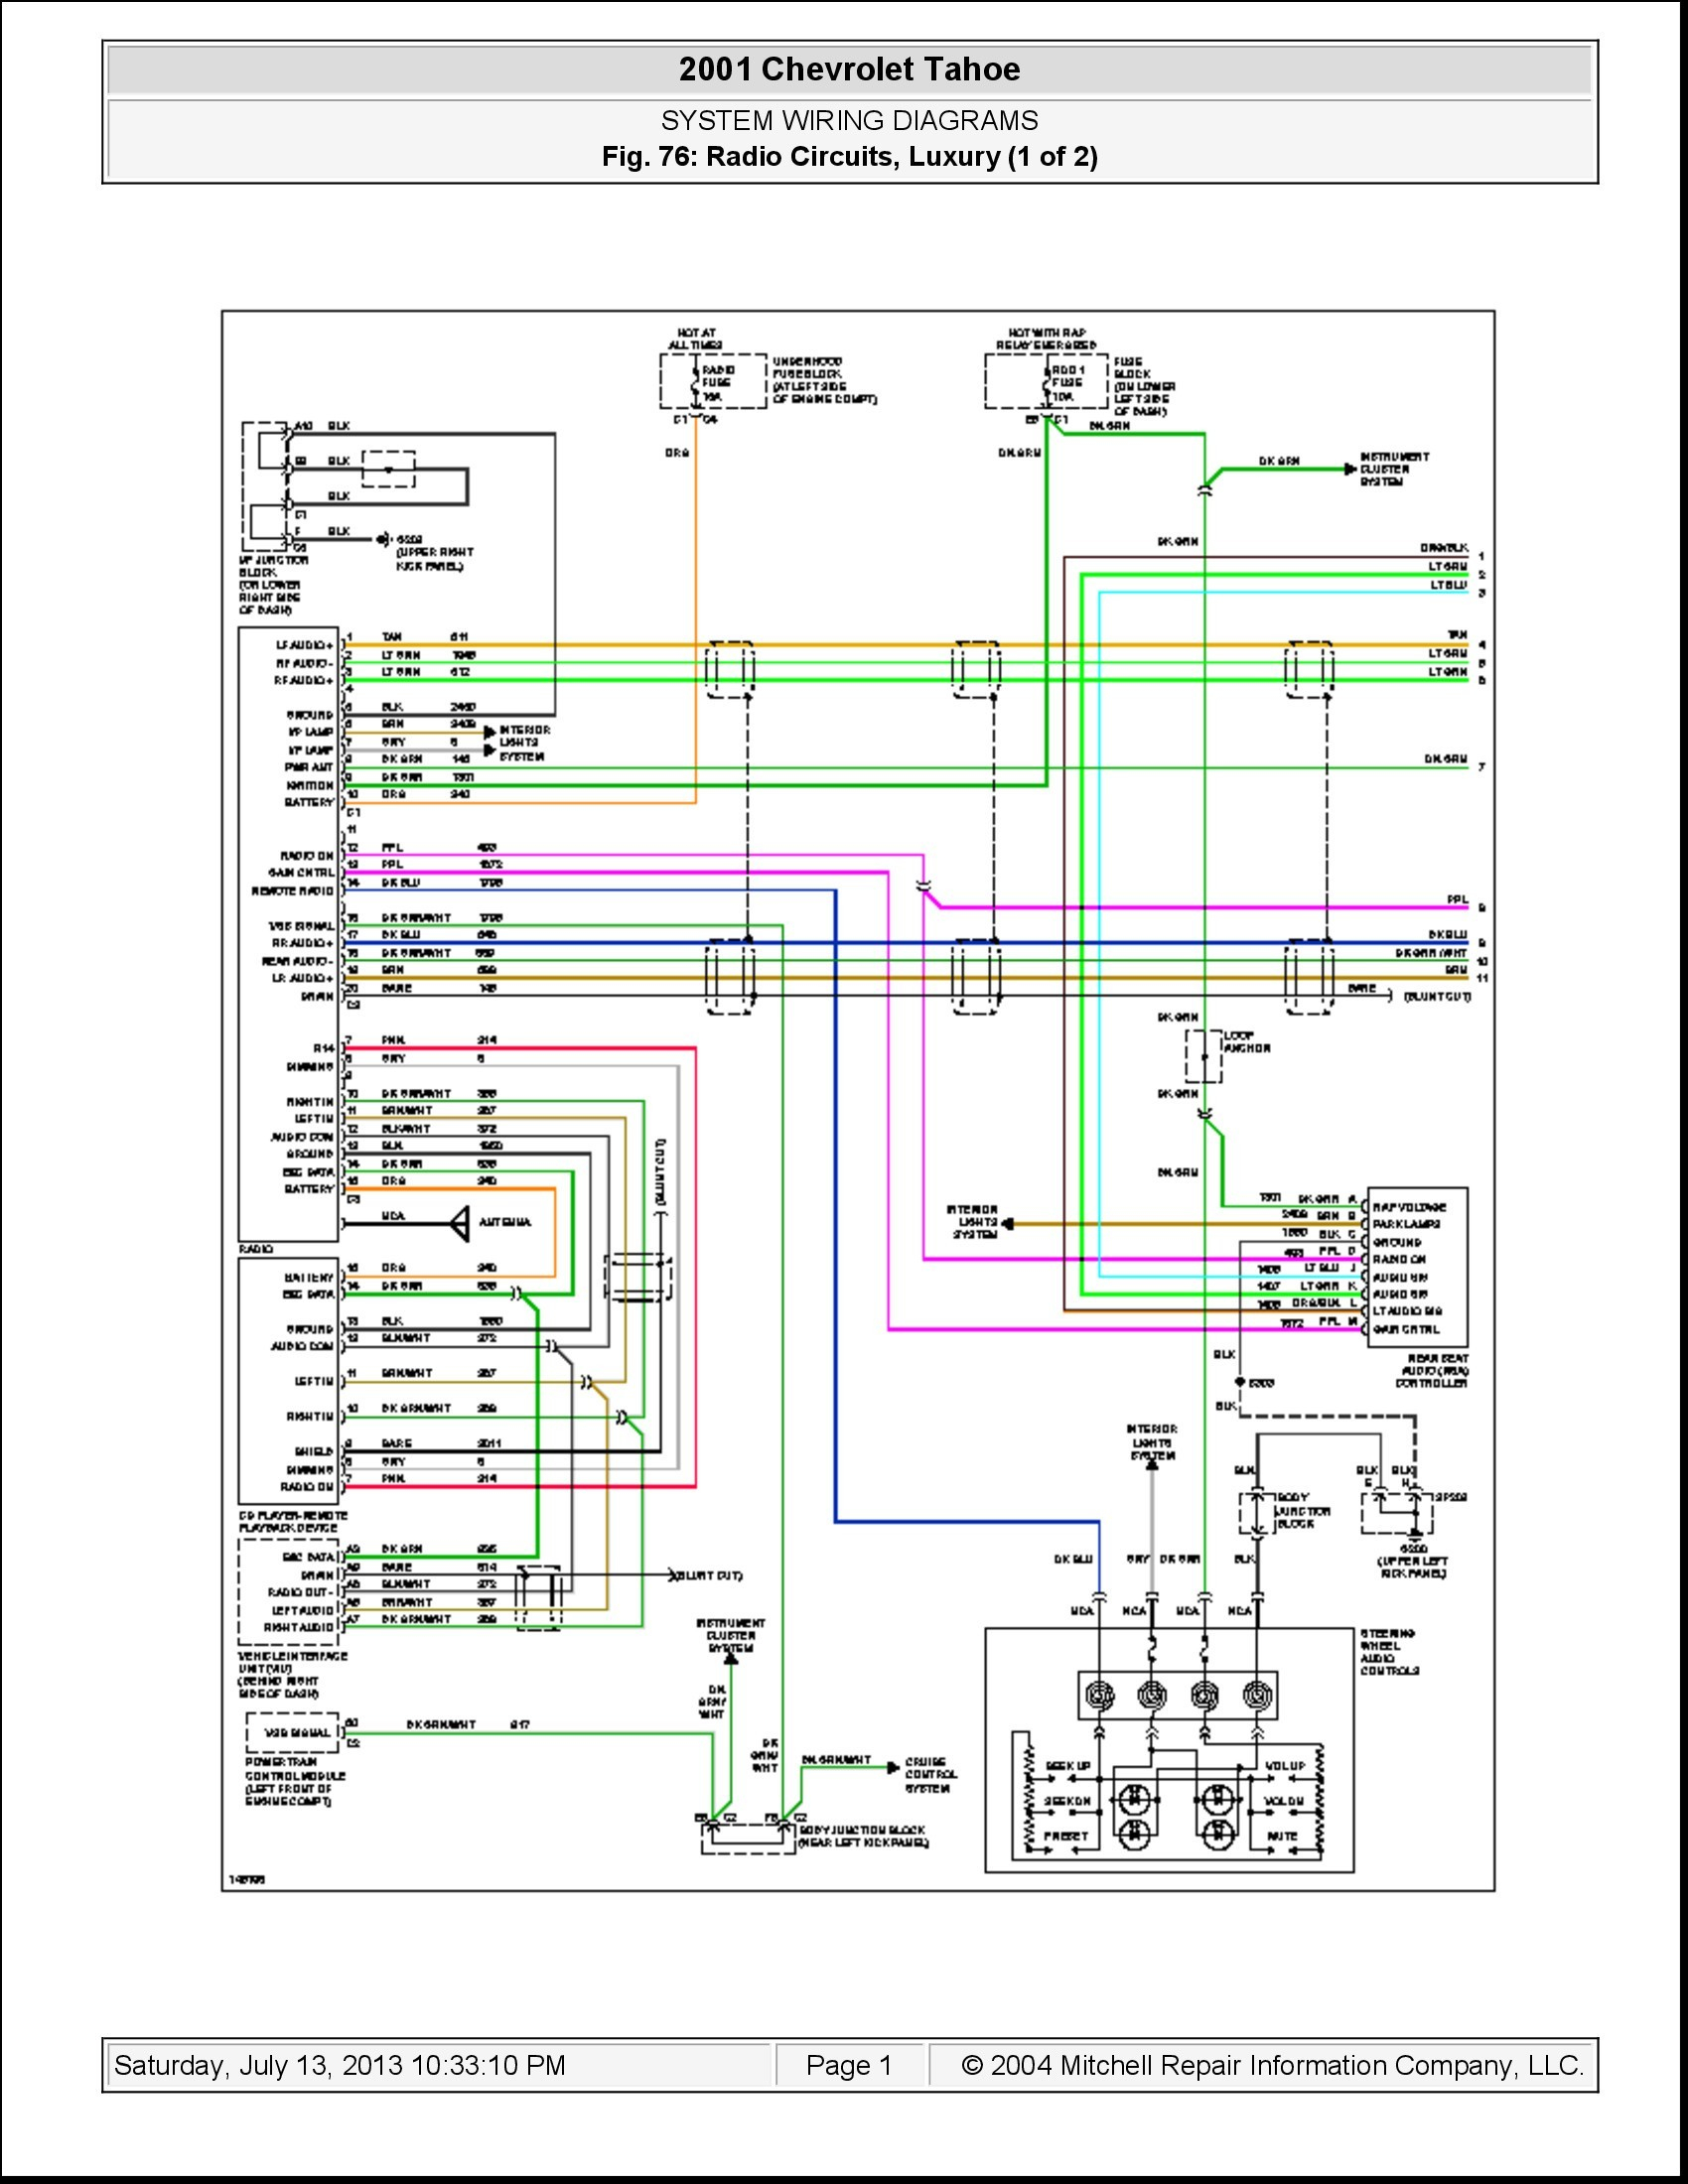 99 Dodge Ram 1500 Radio Wiring Diagram | Hncdesignperu - 1999 Dodge Ram 1500 Radio Wiring Diagram